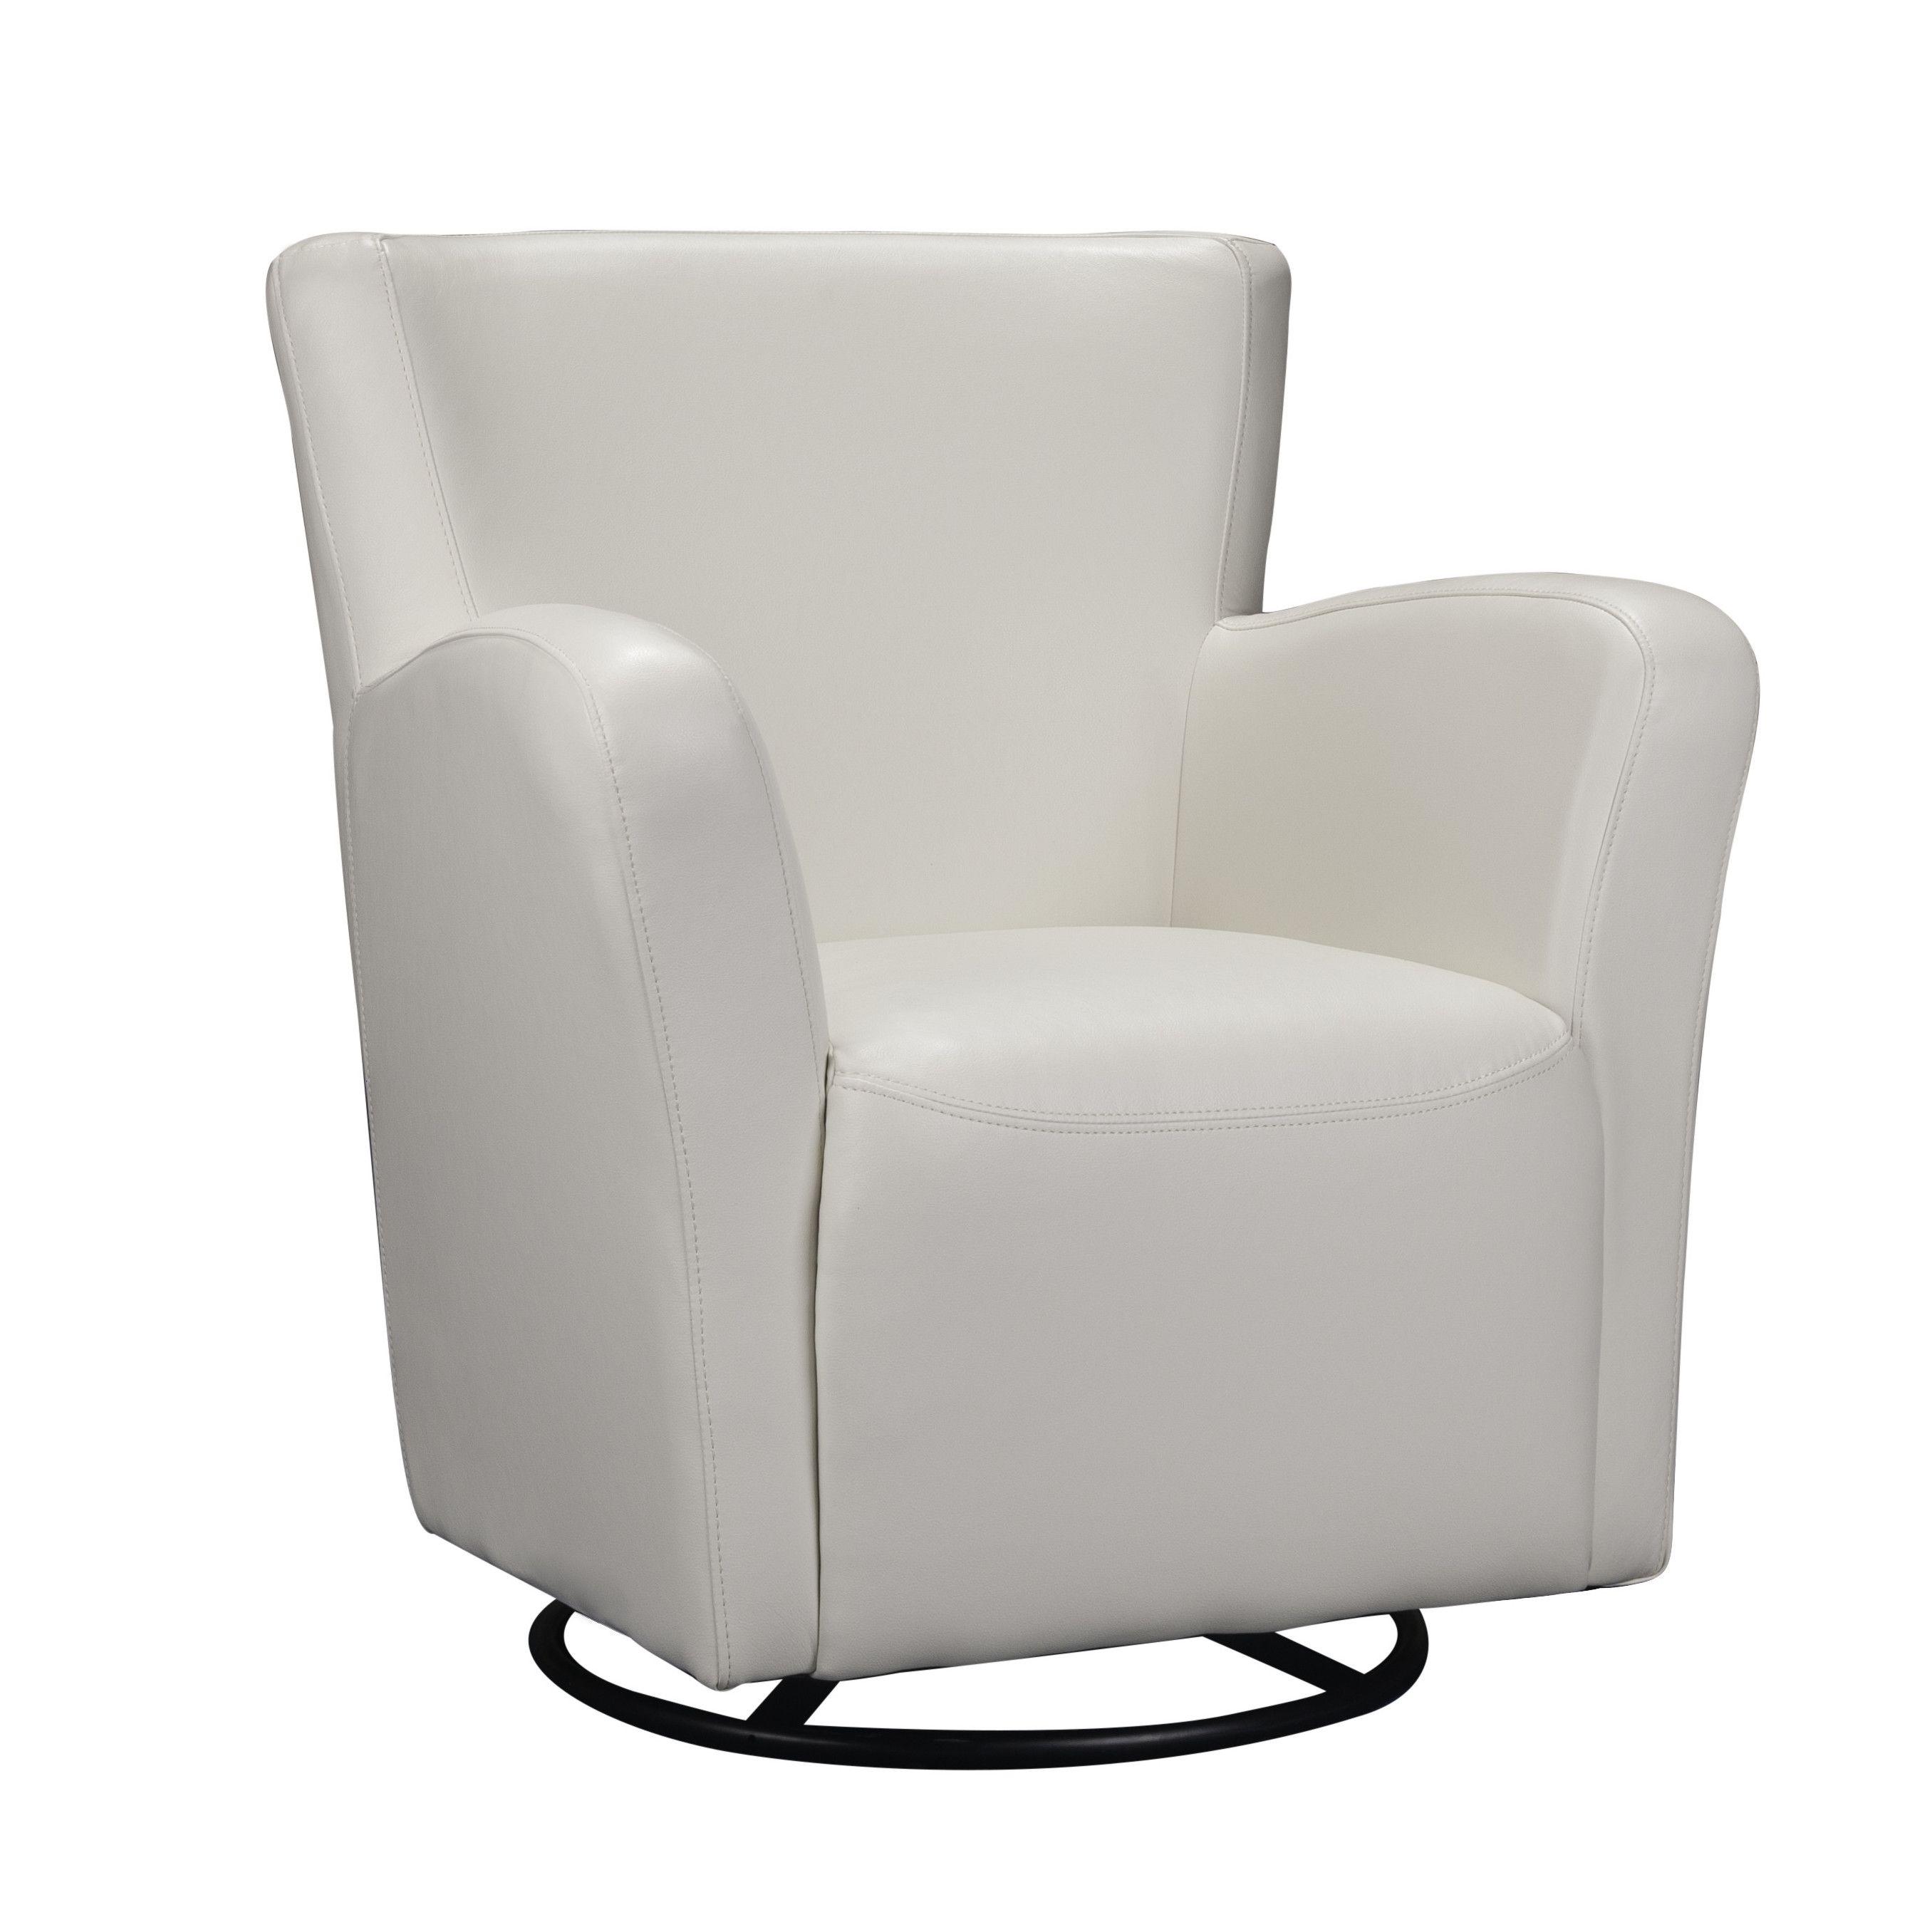 Picket house furnishings marilyn swivel arm chair small swivel chair leather swivel chair swivel